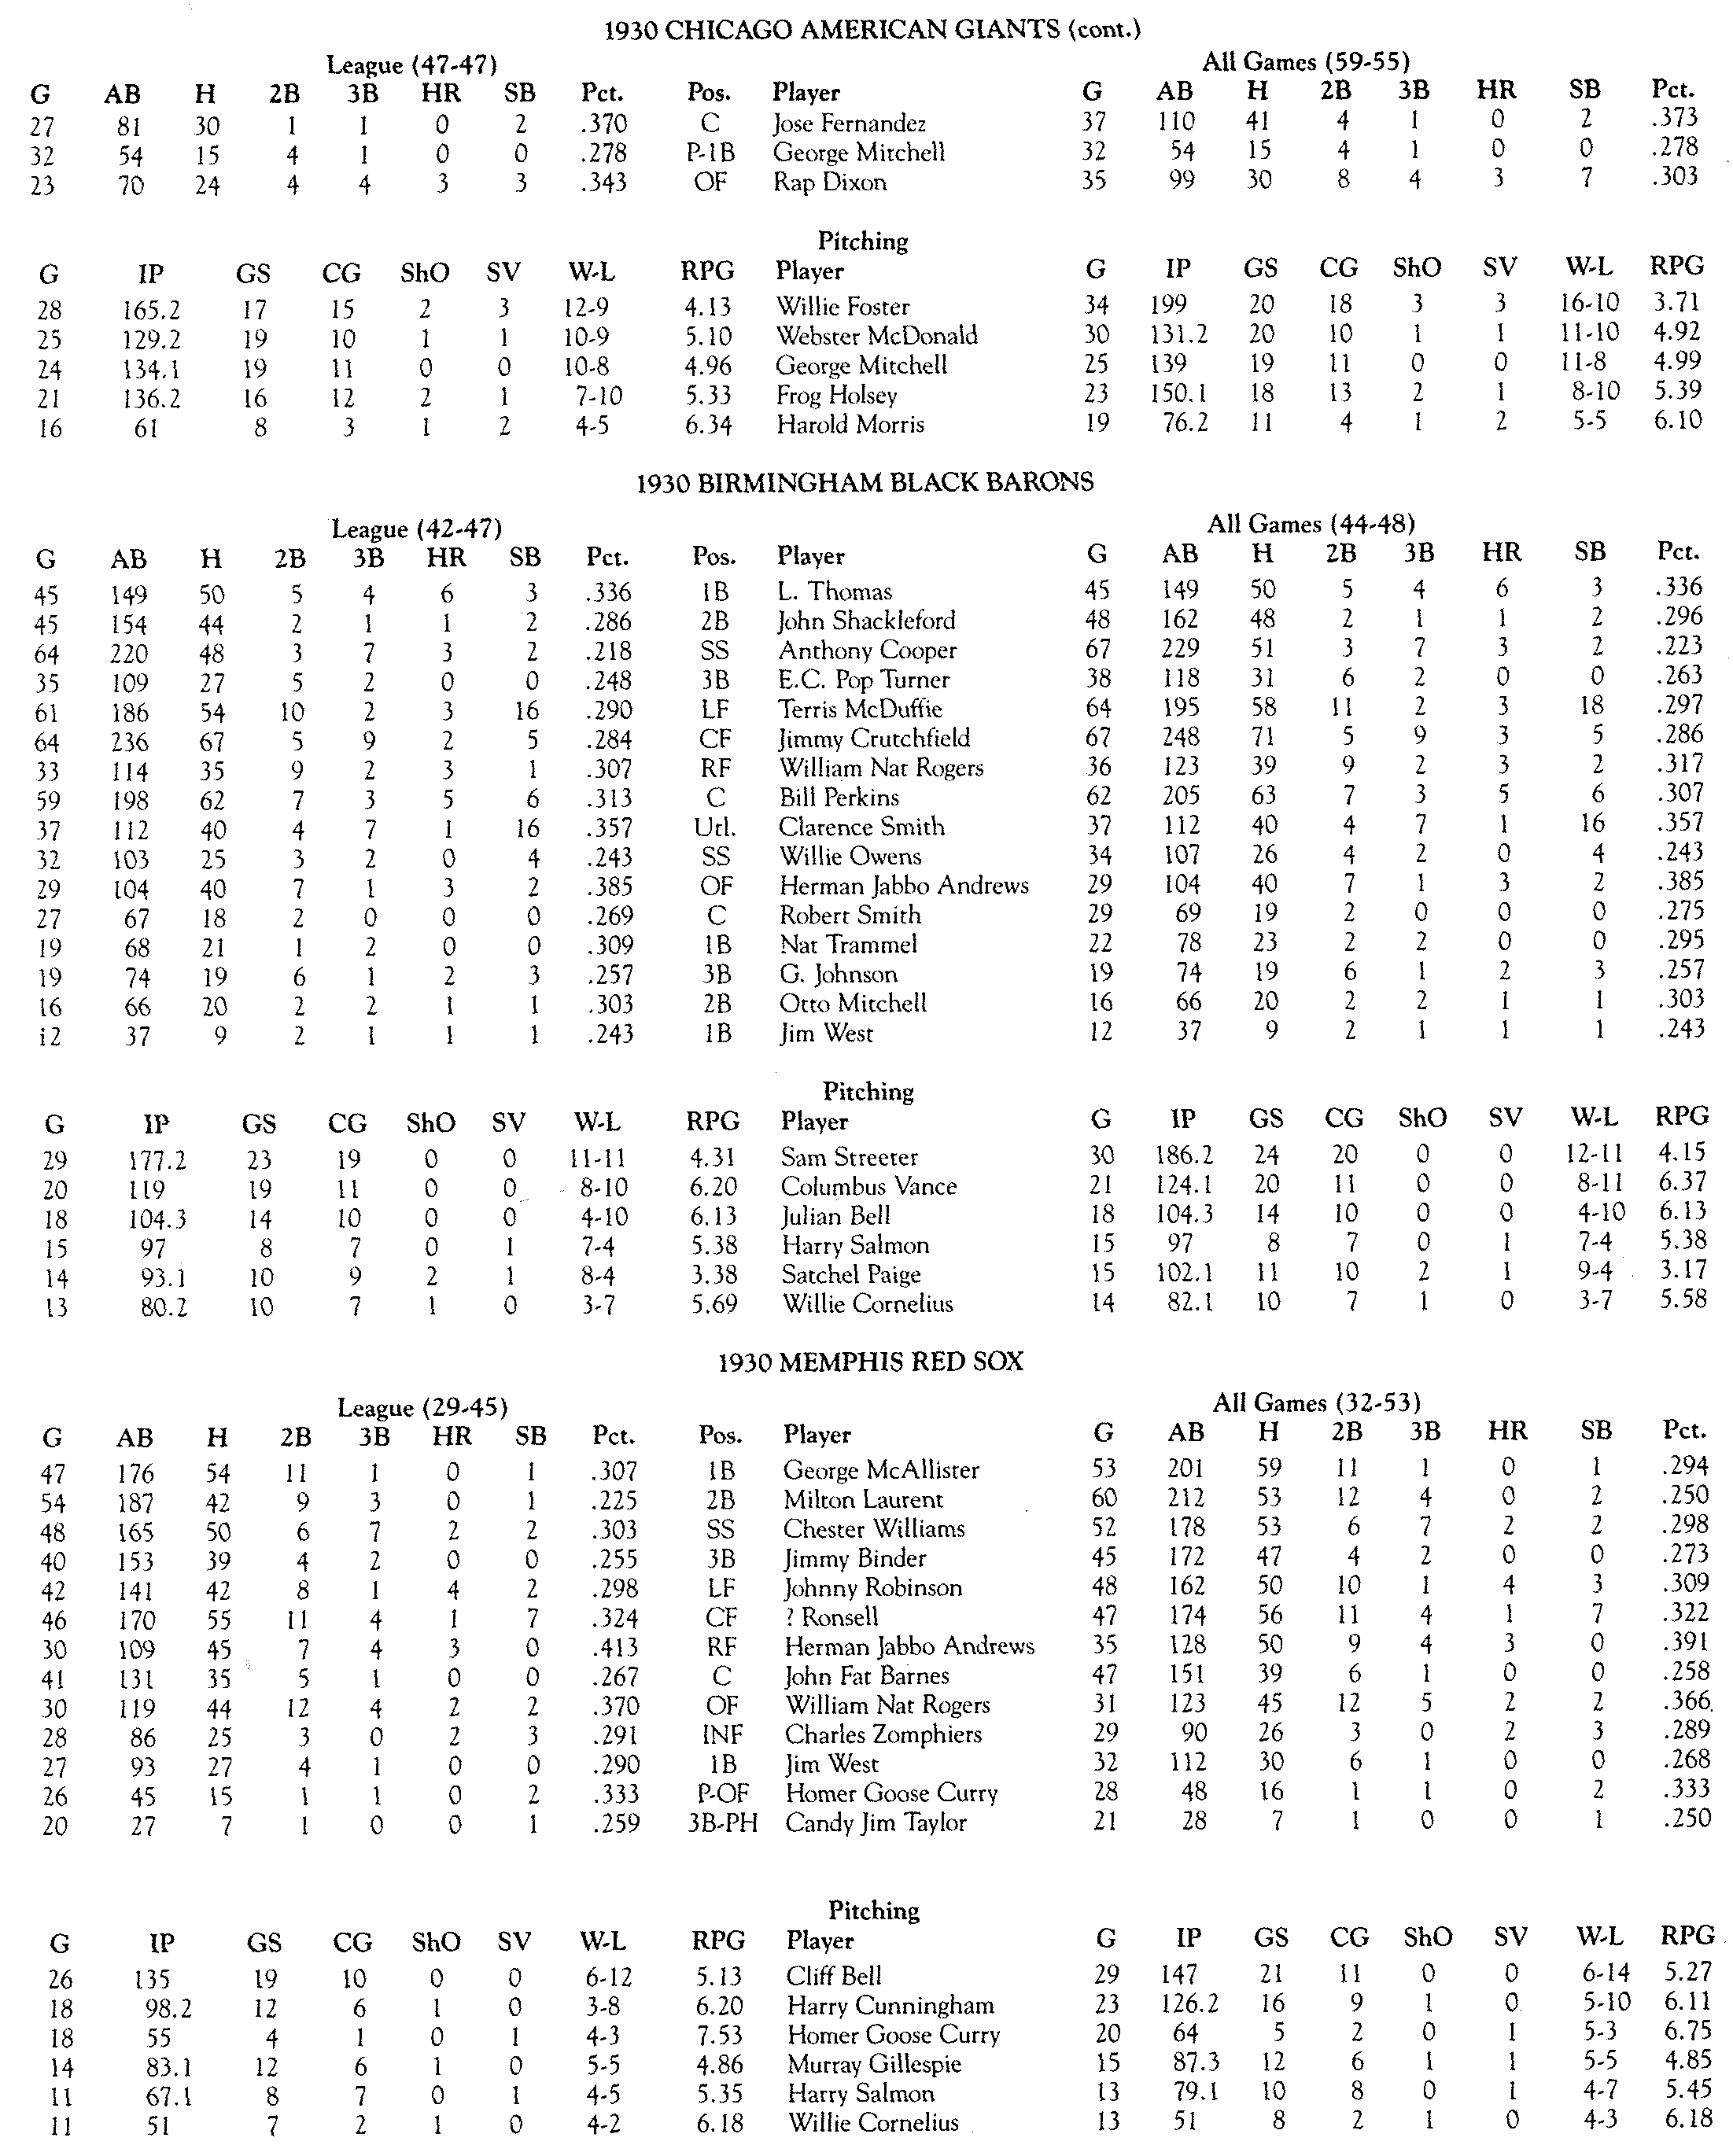 1930 Negro National League stats: Table 4 (DICK CLARK AND JOHN HOLWAY)